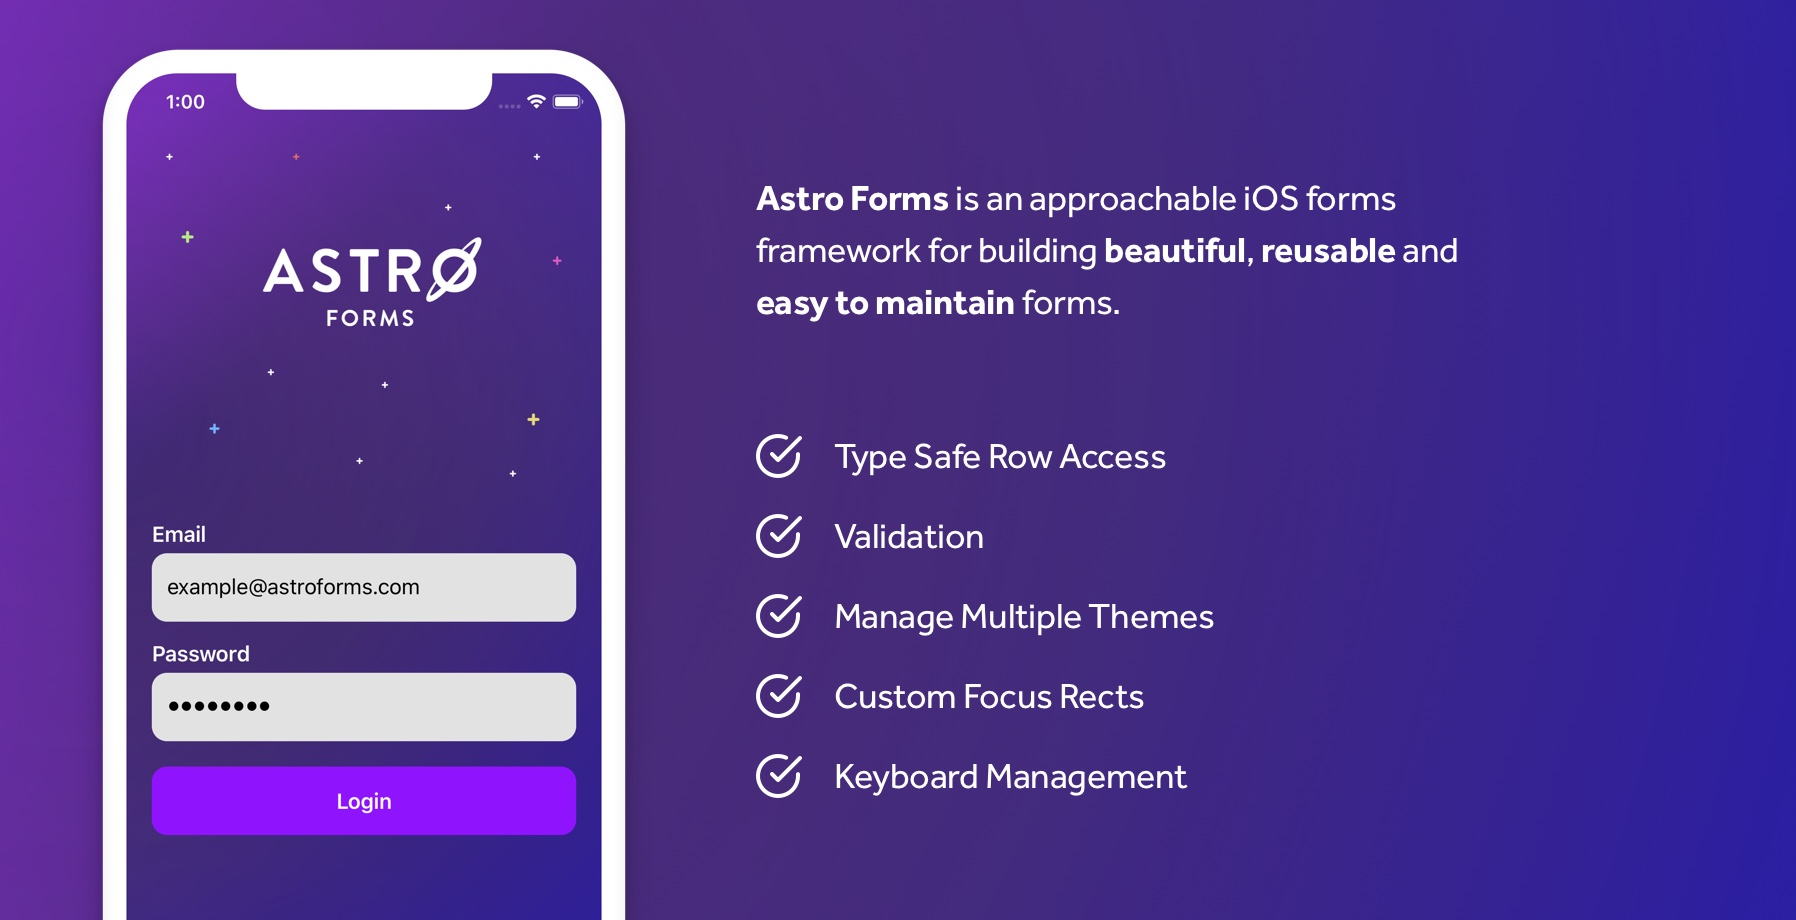 Astro Forms is an approachable iOS forms framework for building beautiful, reusable and easy to maintain forms. Type Safe Row Access, Validation, Manage Multiple Themes, Custom Focus Rects, Keyboard Management